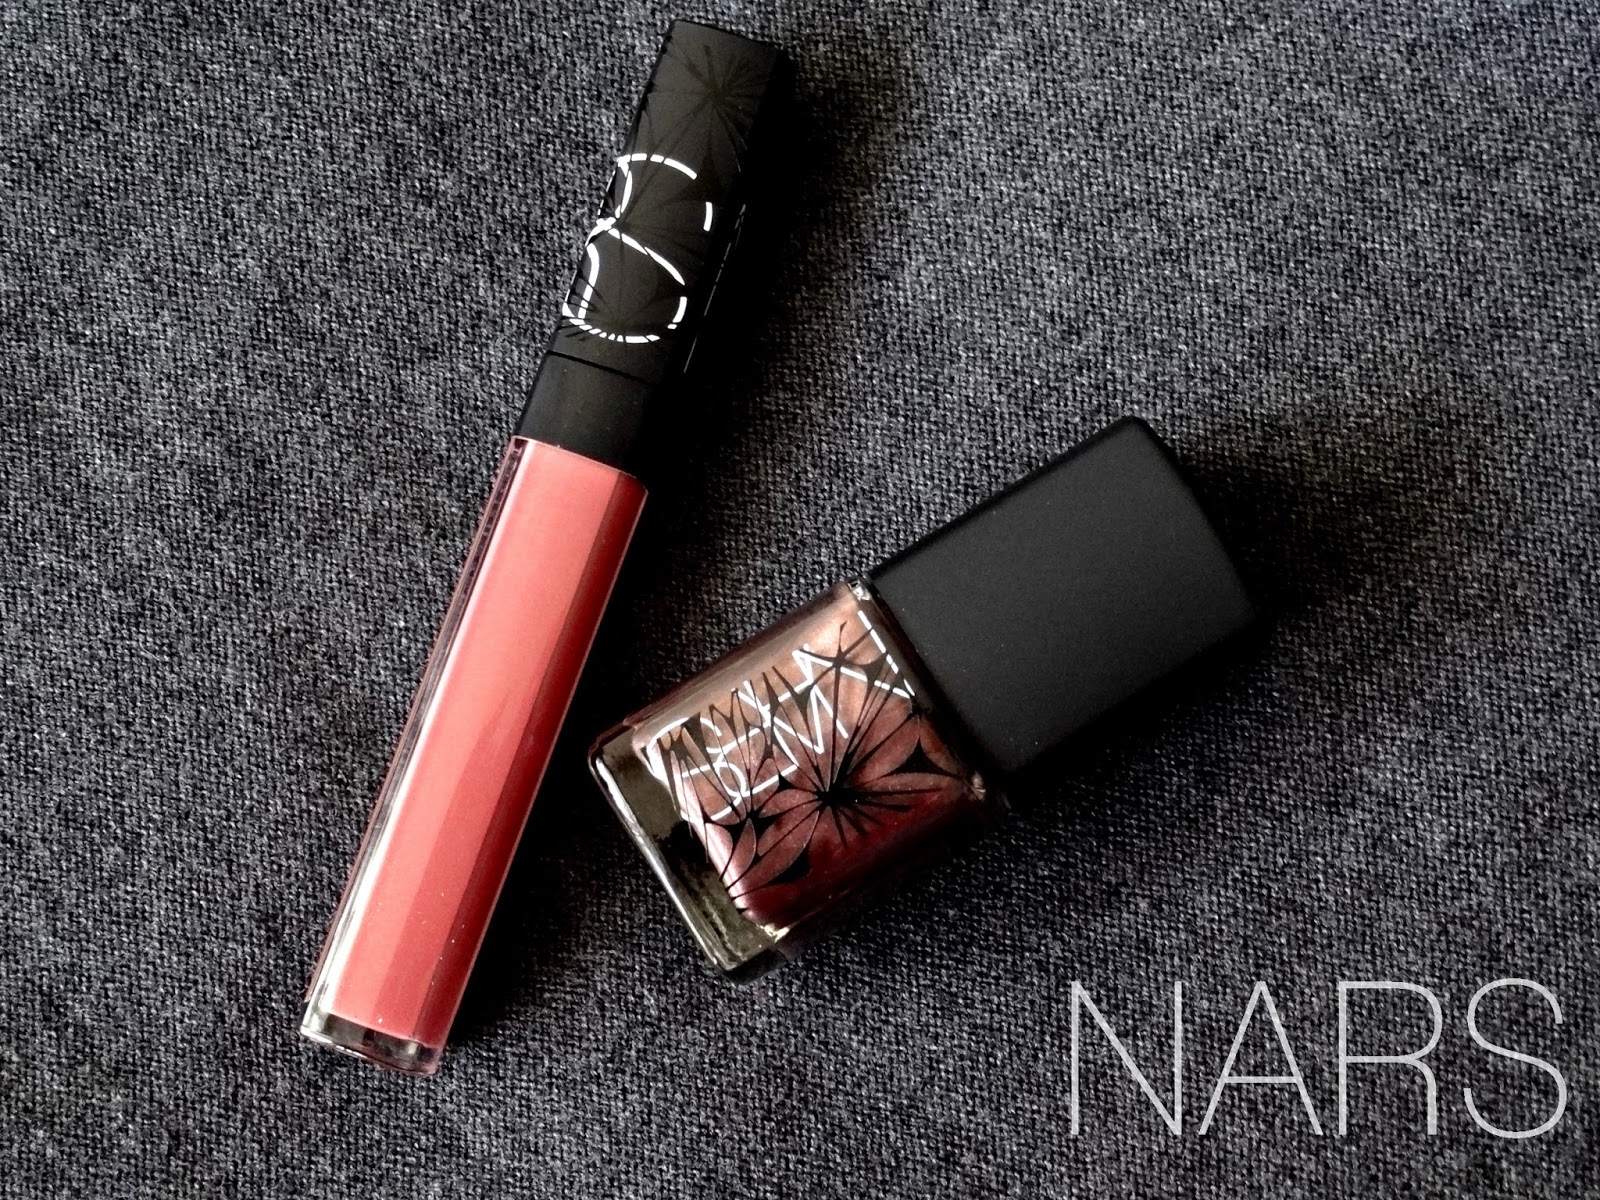 NARS Laced with Edge Holiday Collection Corsica gloss and Sherwood Nail Polish